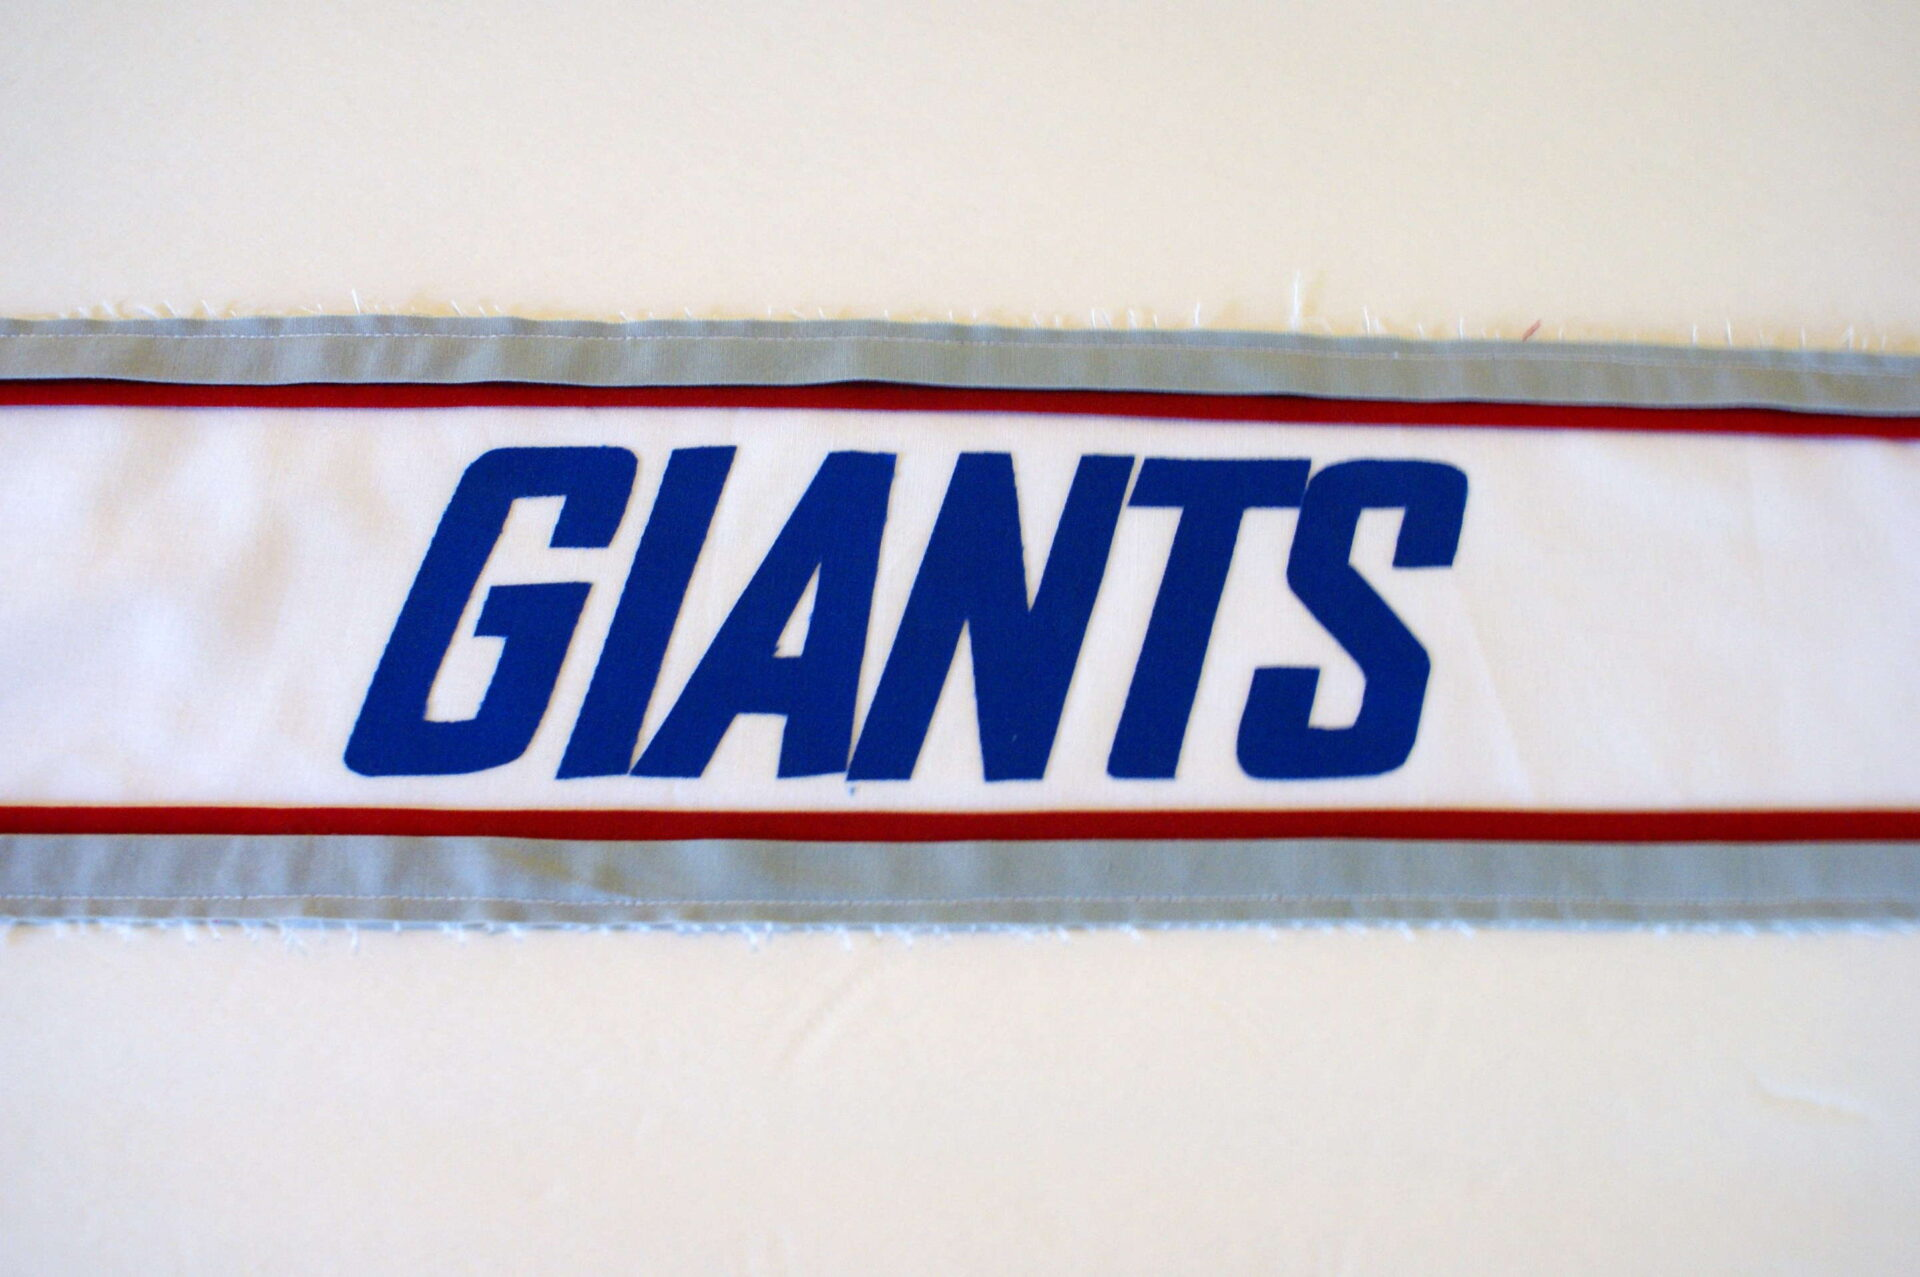 490bffbdabe ny giants quilted pillow cover tutorial